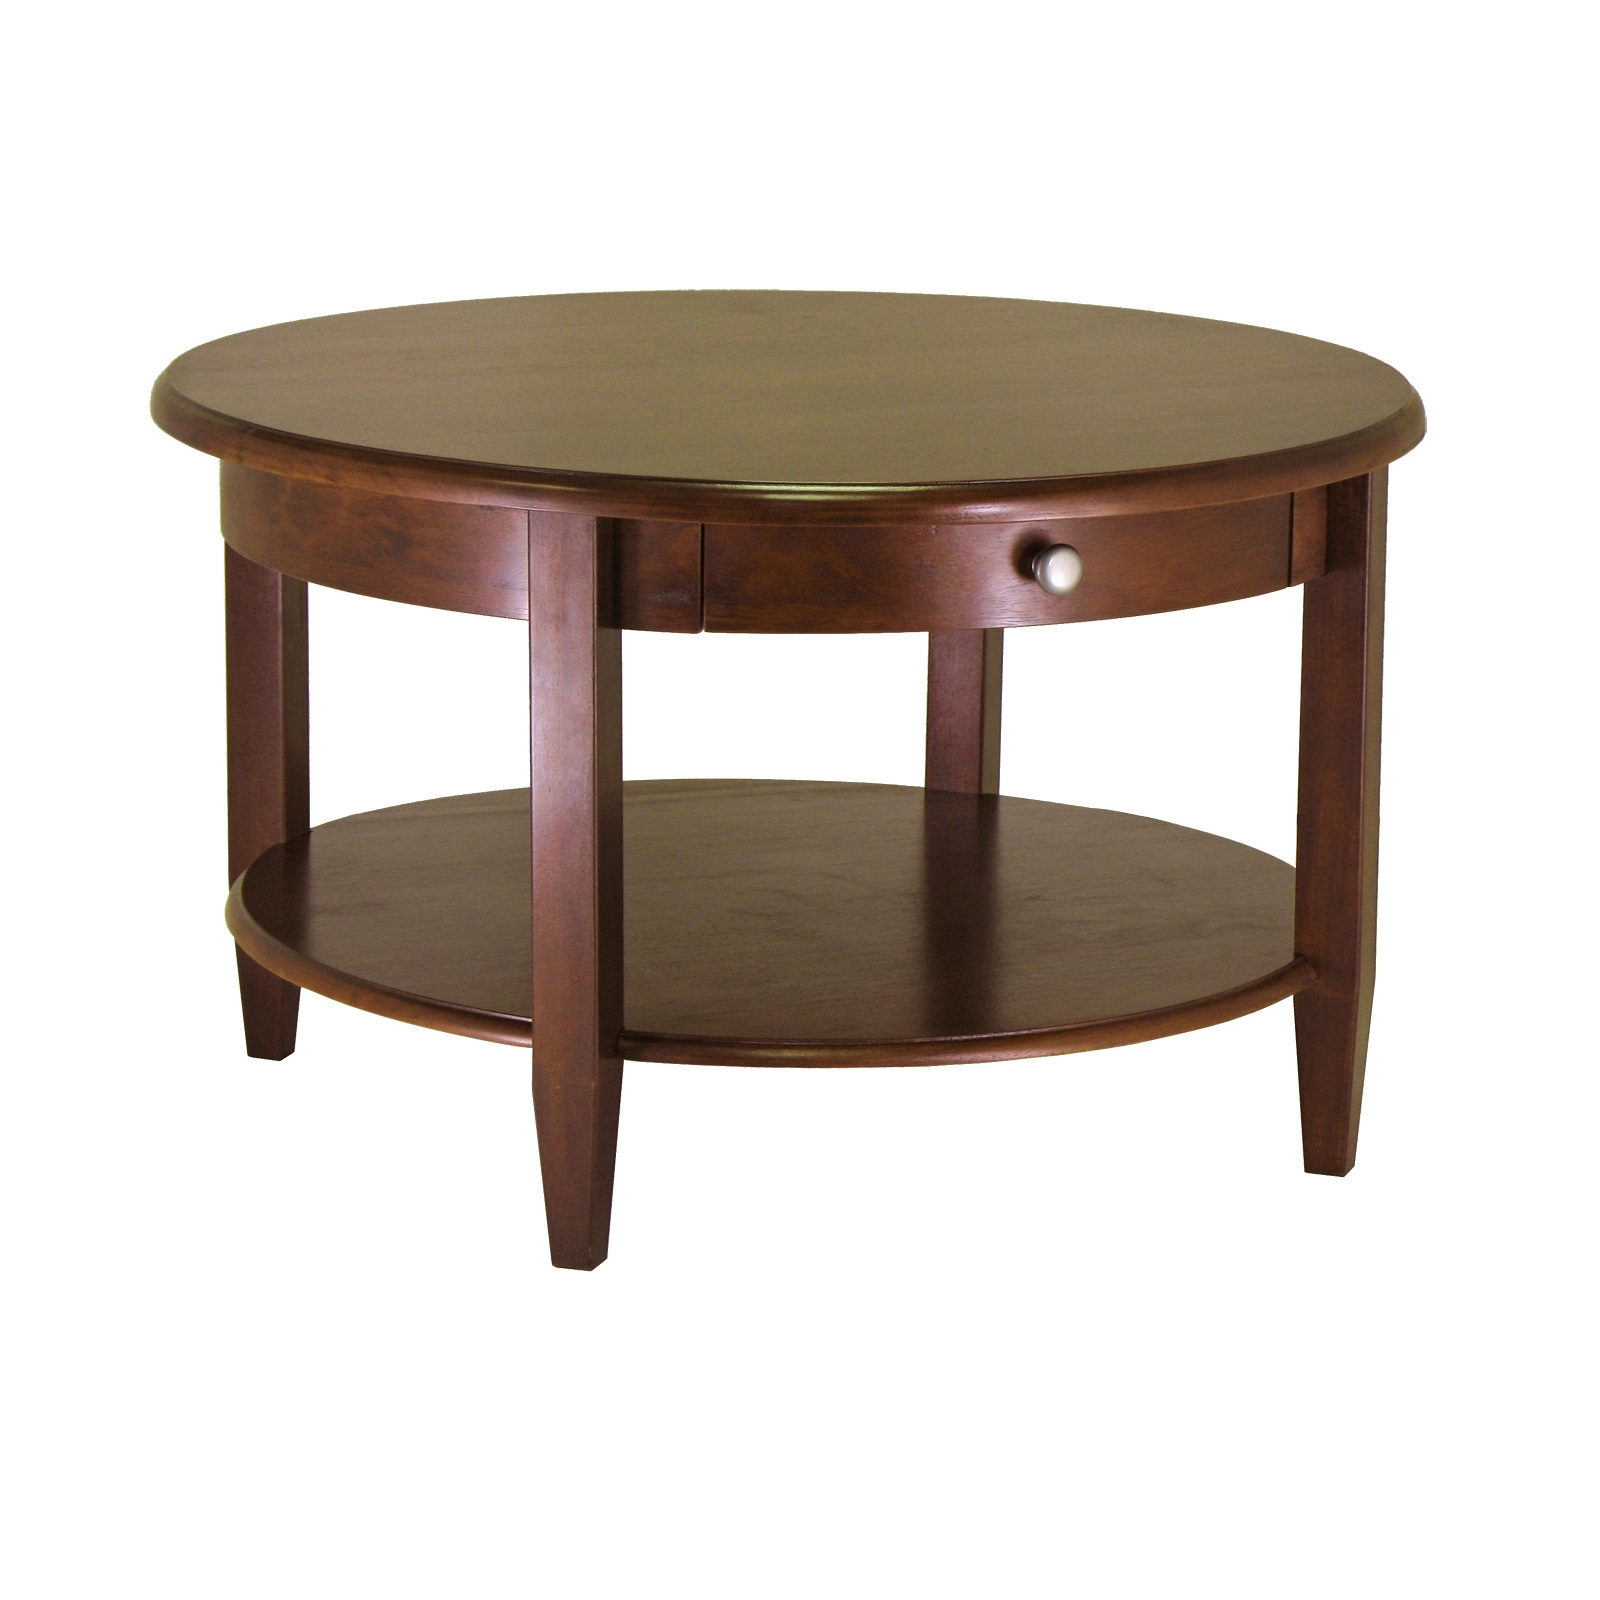 Winsome Wood Concord Round Coffee Table, Walnut Finish – Walmart Pertaining To Current Walnut Finish 6 Drawer Coffee Tables (View 12 of 20)